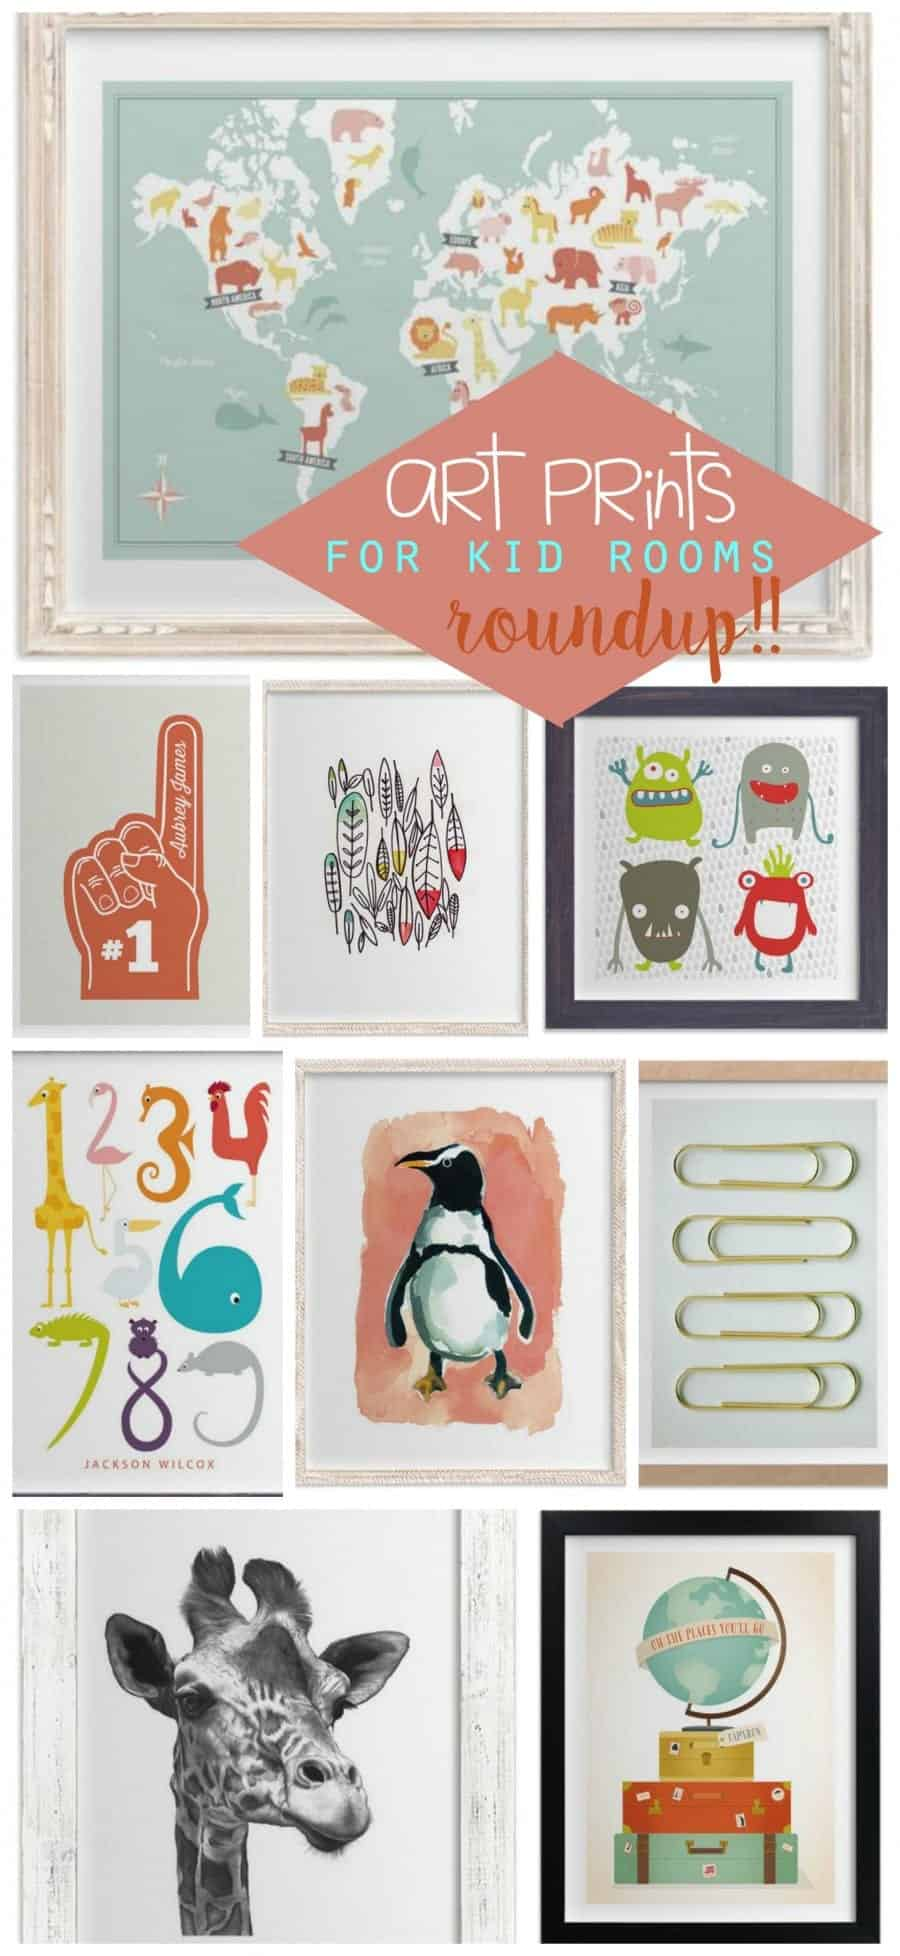 over 20 of my favorite art prints for kid rooms!